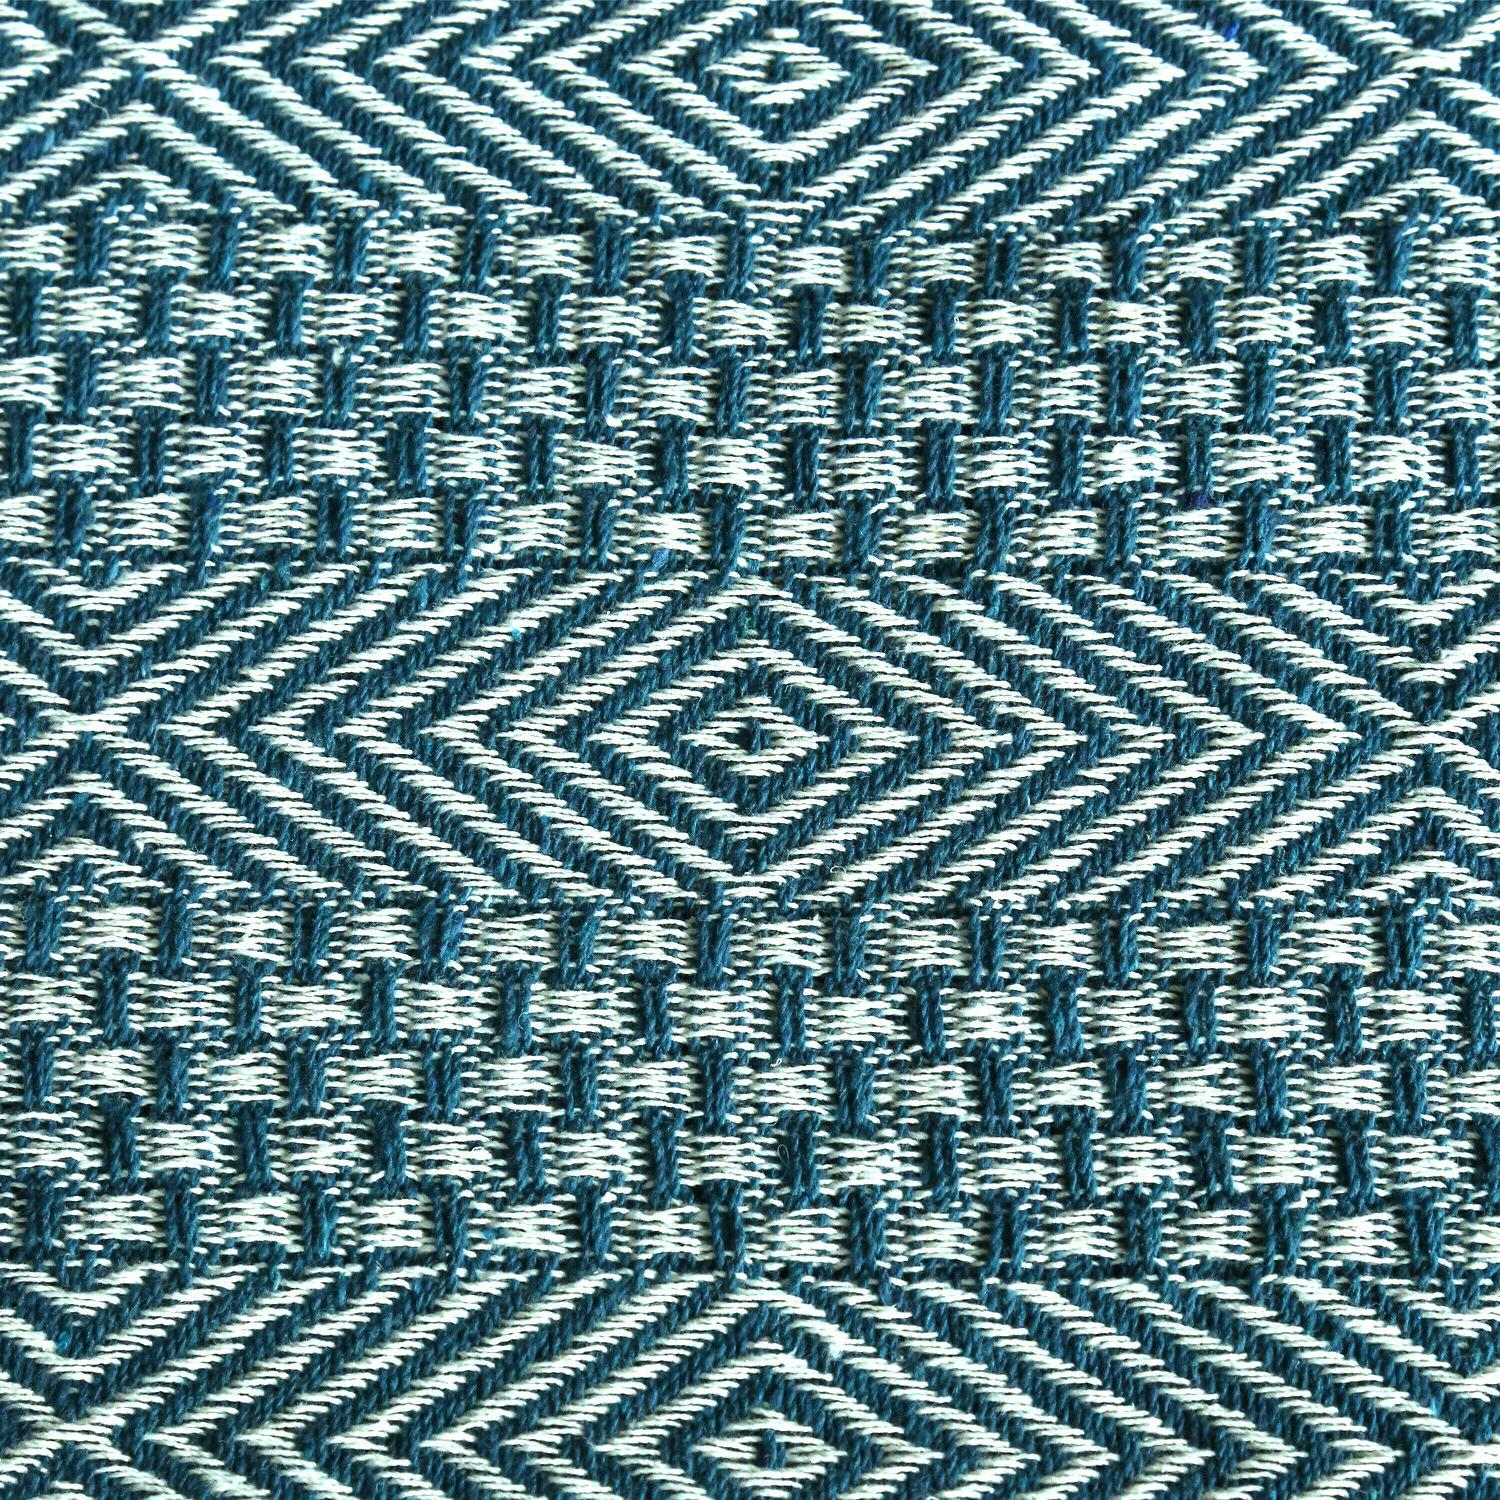 Cotton Teal Throws Geometric Woven Throw Blanket 50 60 inches